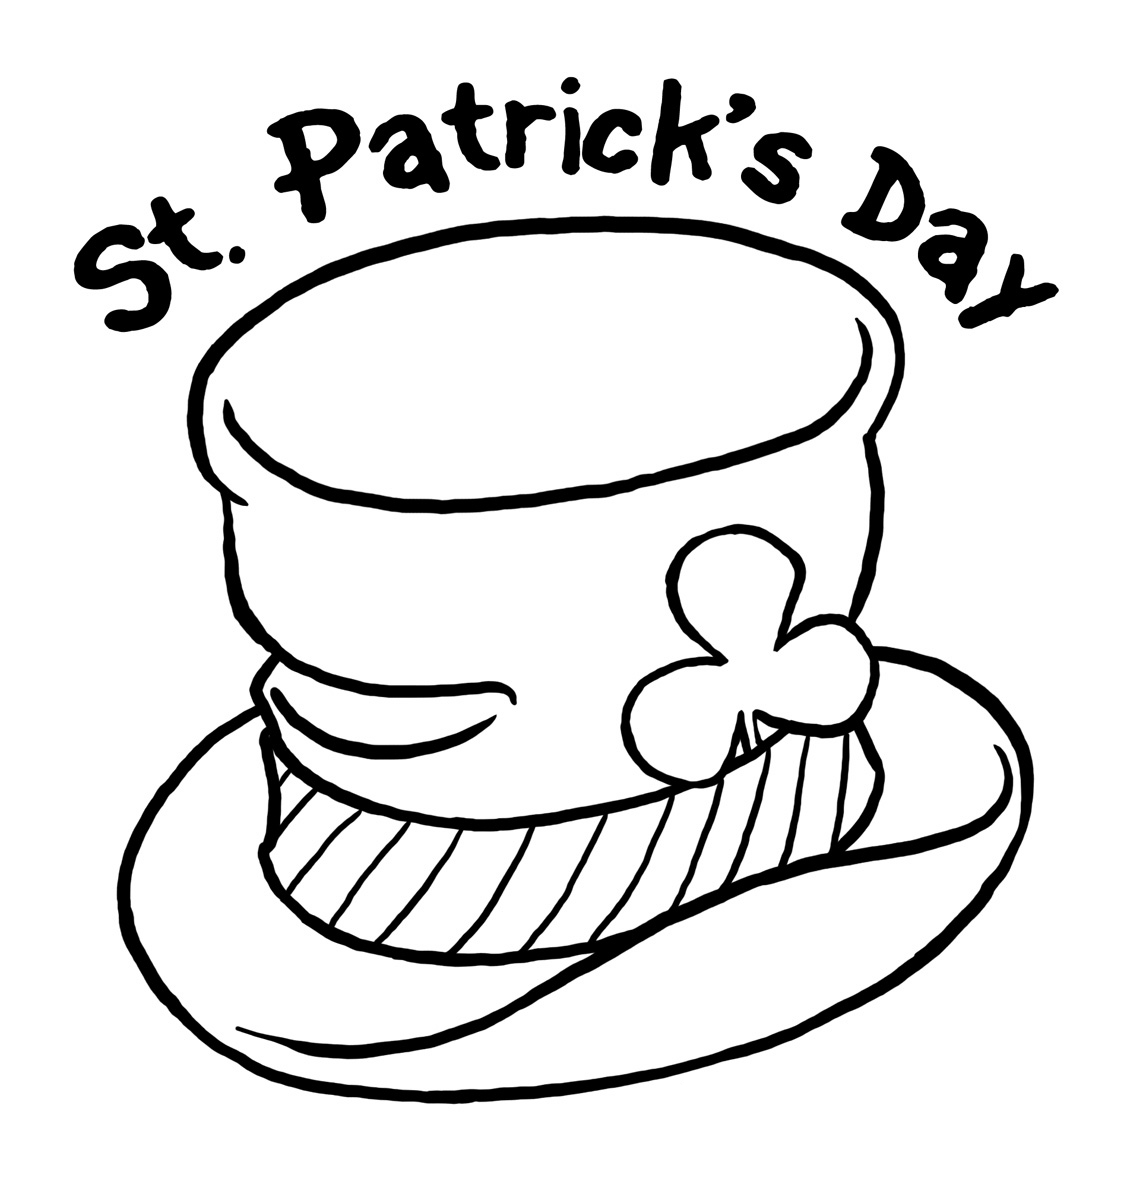 St Patricks Day Coloring Pages | St. Patrick's Day Coloring Pages - Free Printable Saint Patrick Coloring Pages